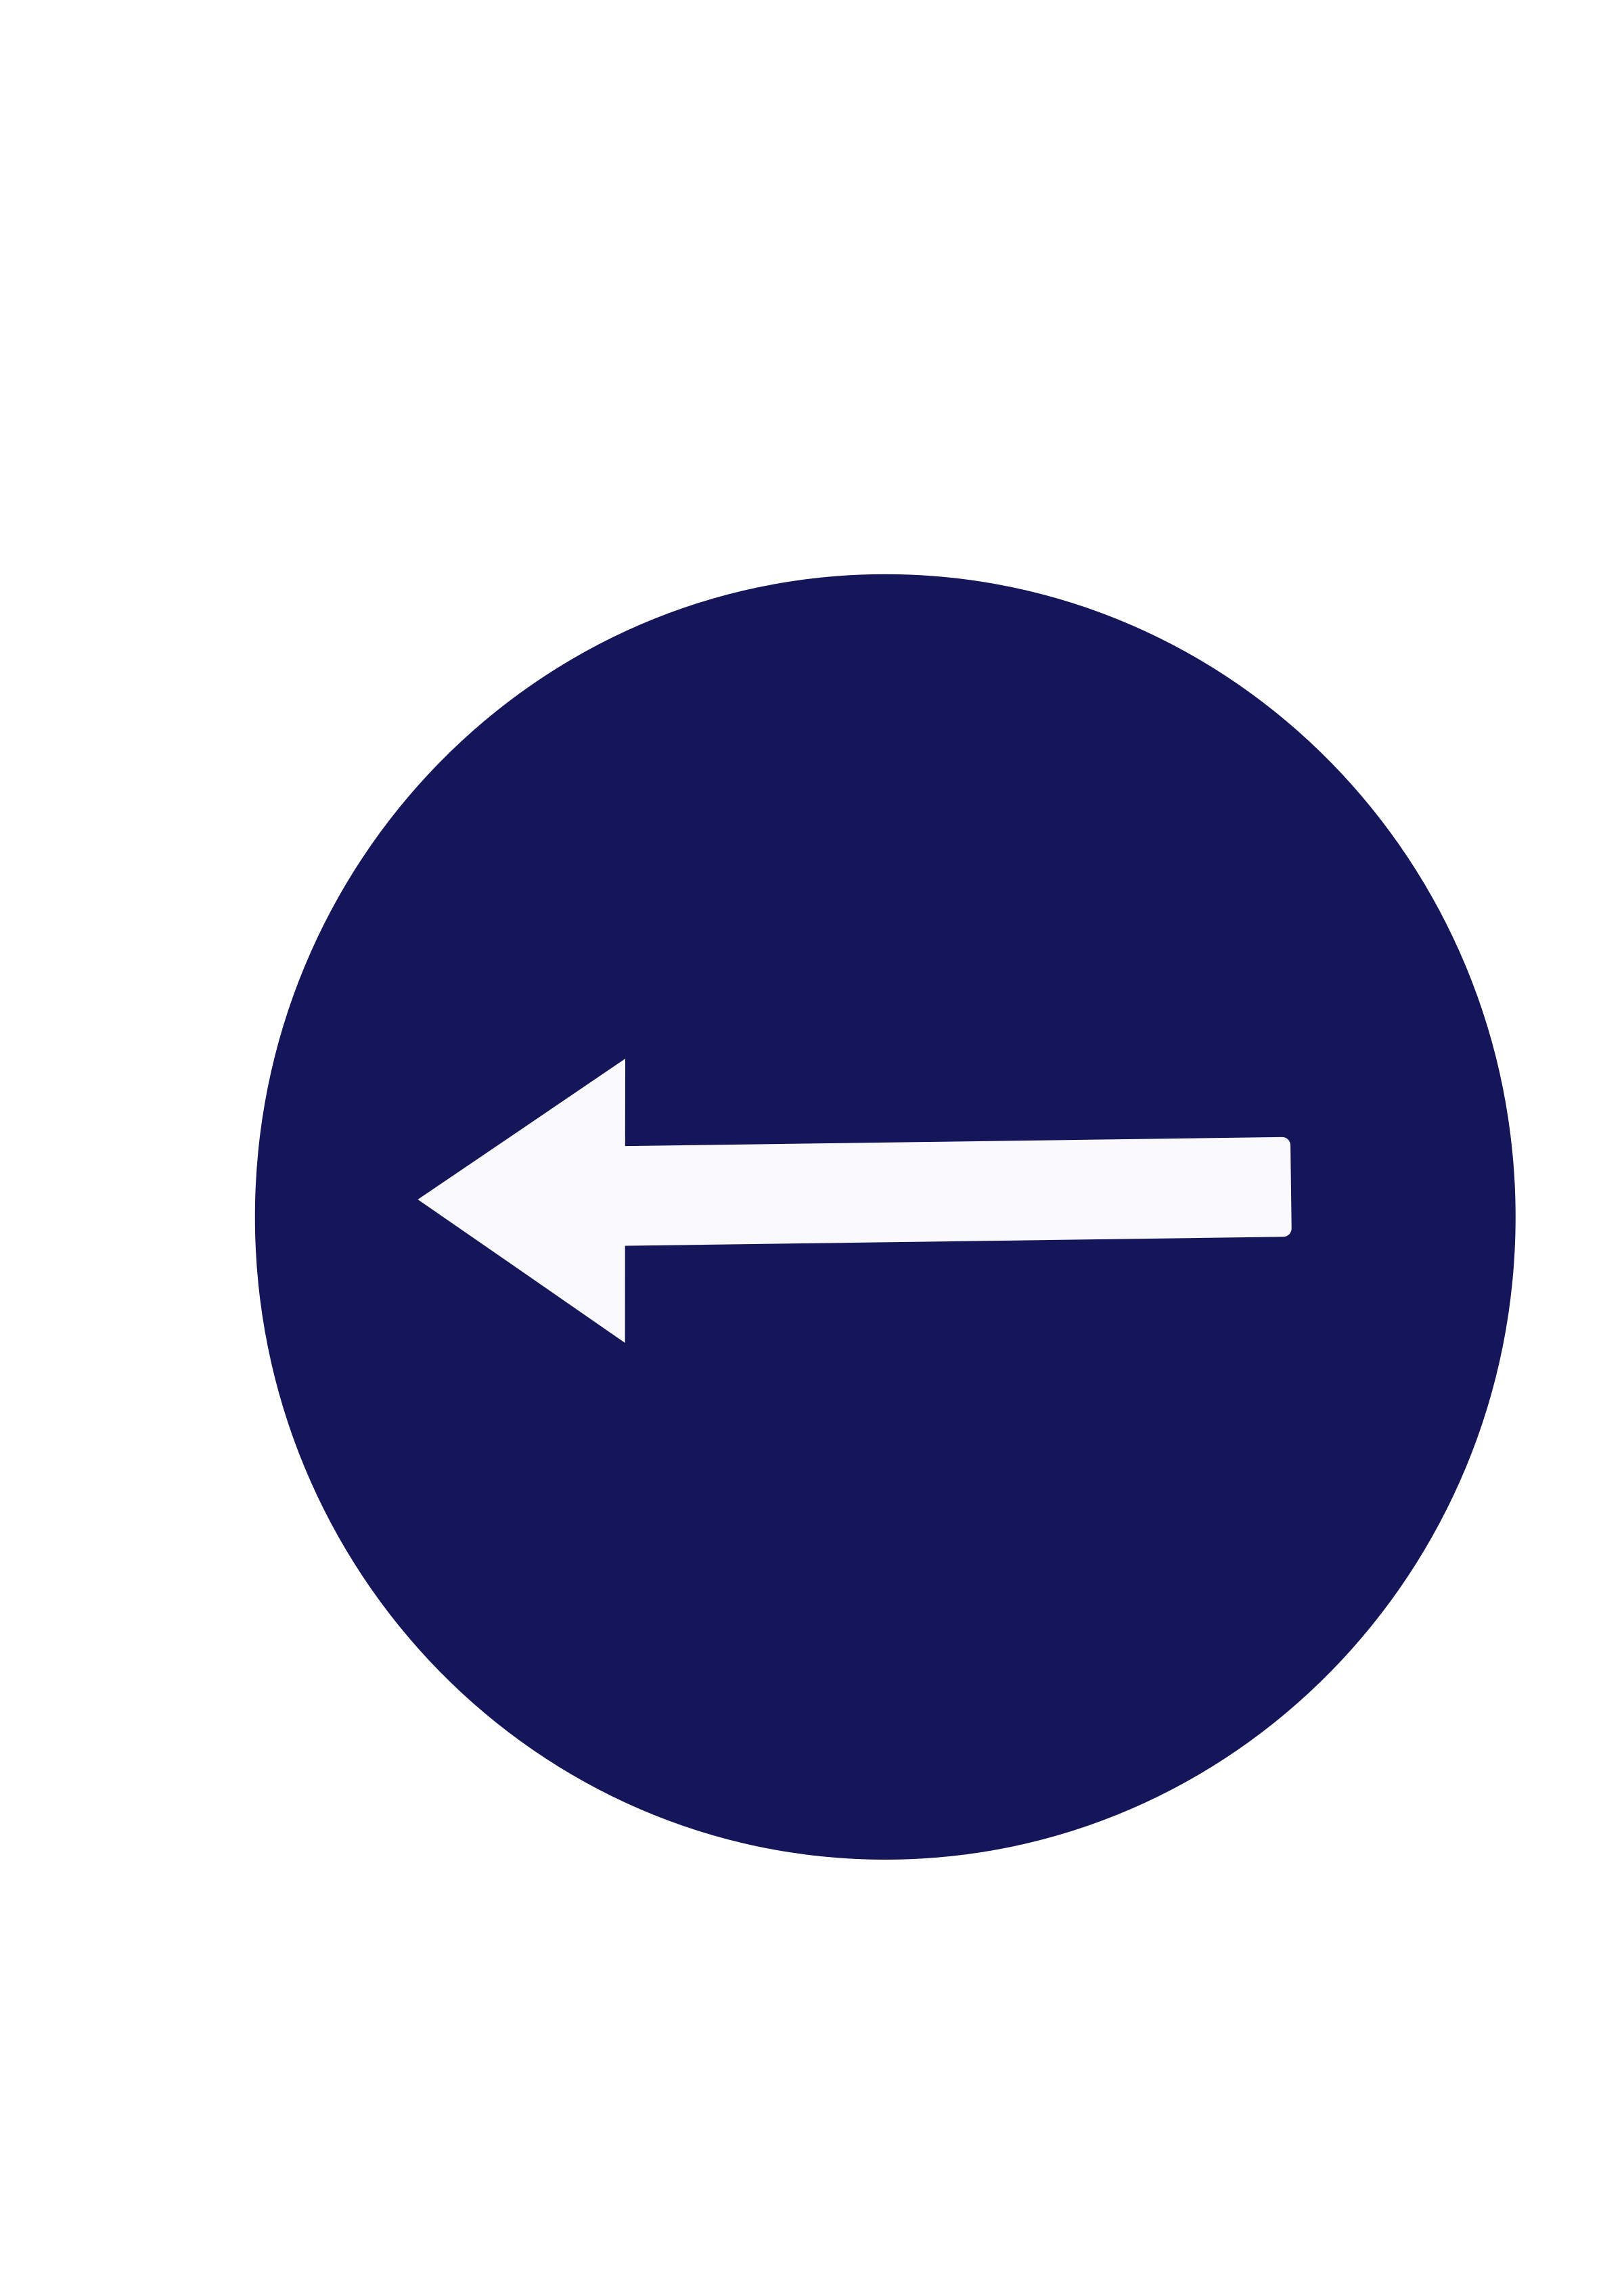 Indian road sign - Compulsory turn left by ksrujana96